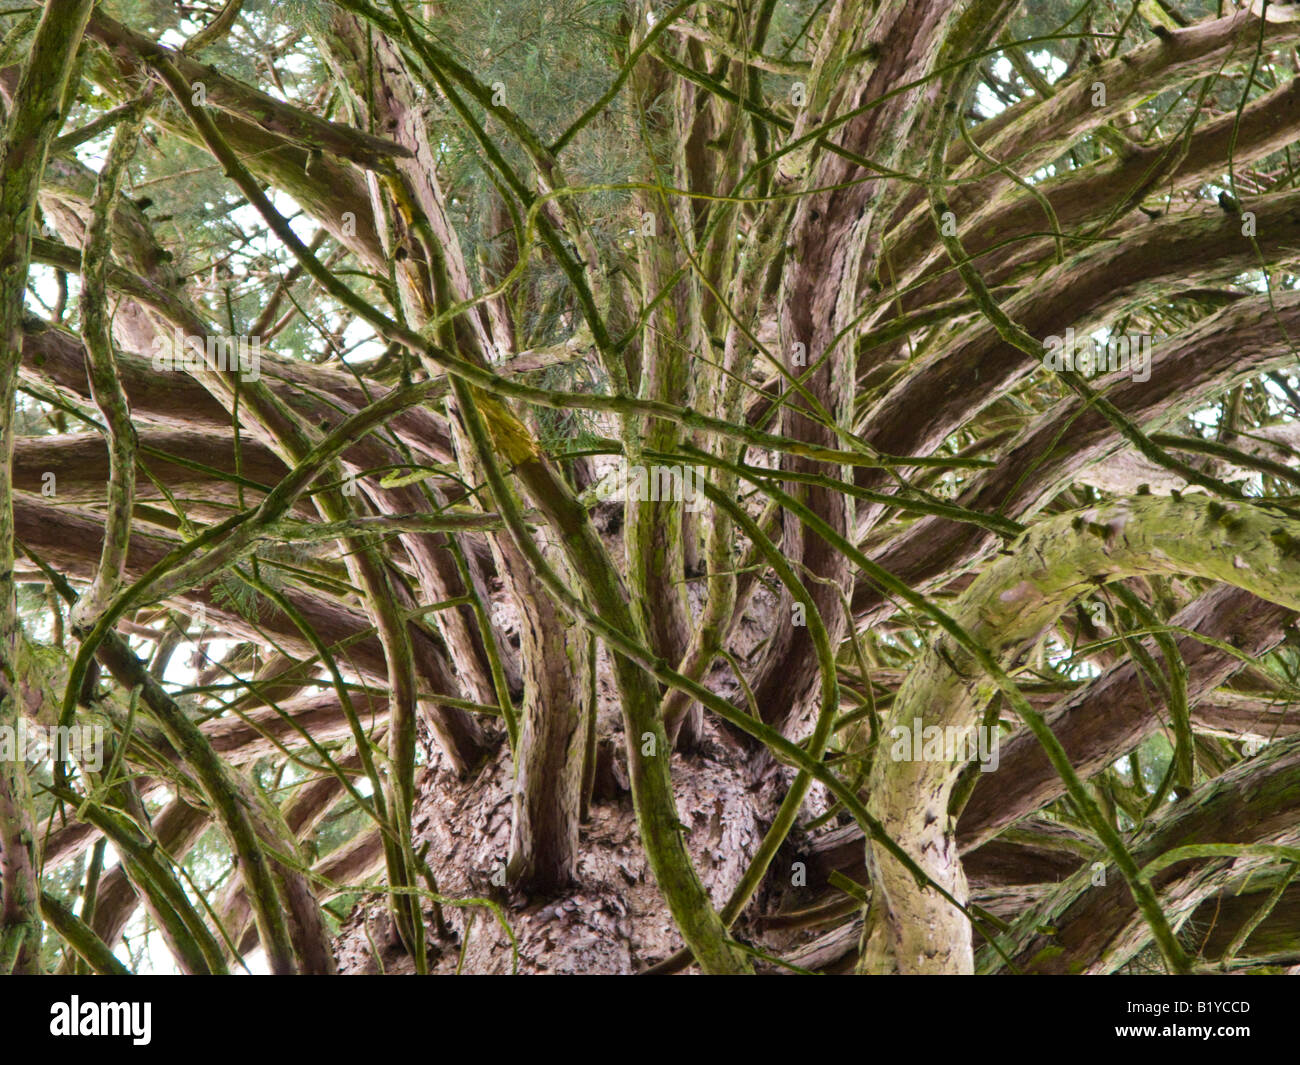 Trunk and branches of a huge conifer tree - Stock Image